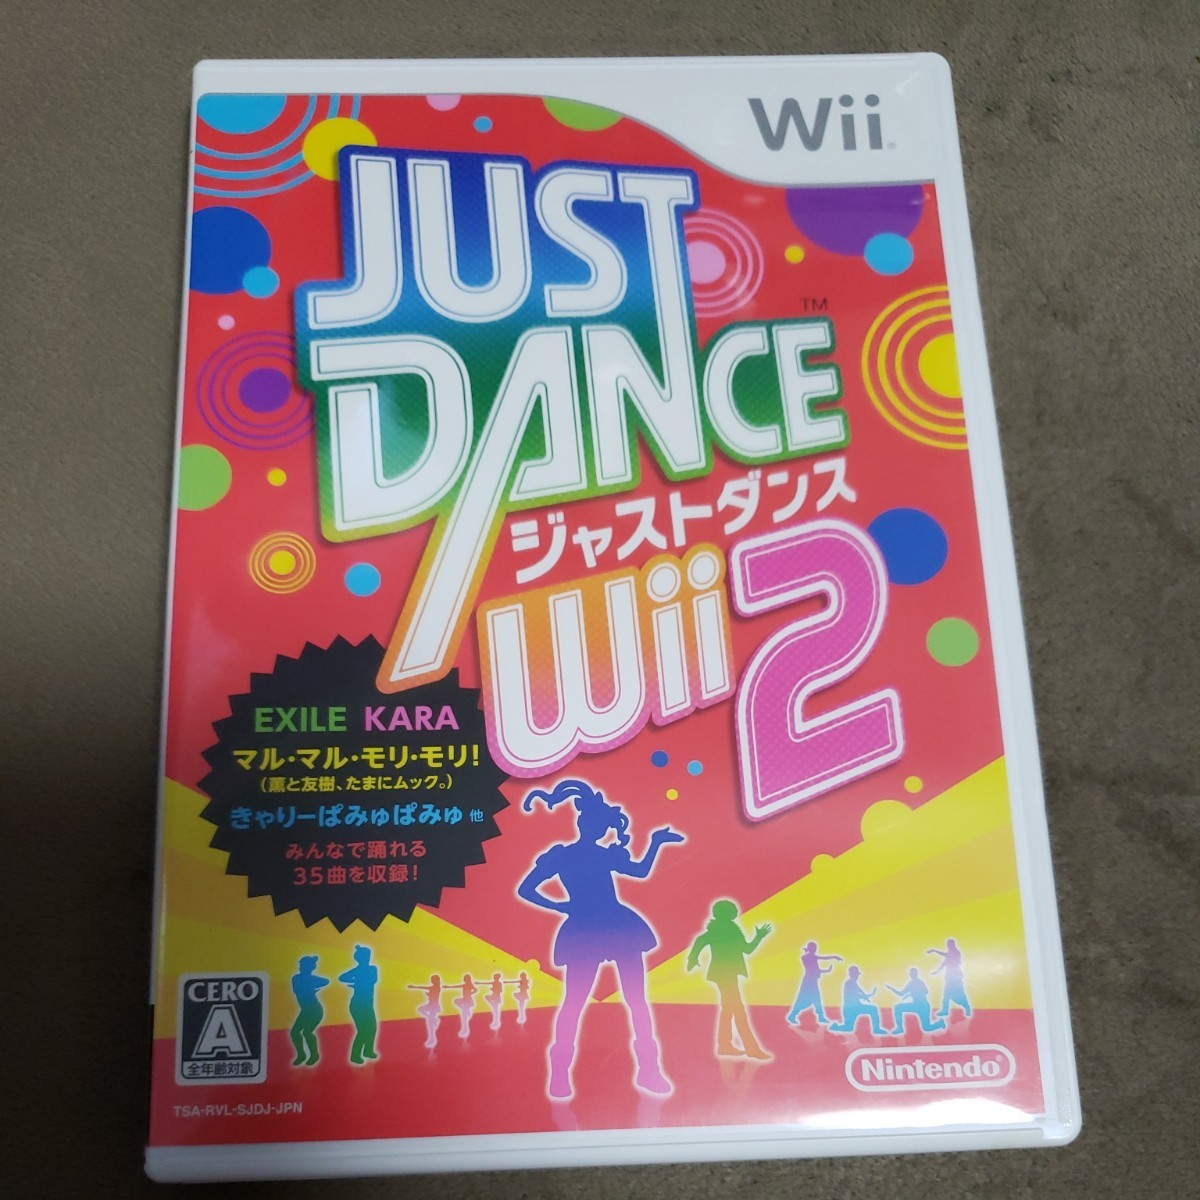 【Wii】 JUST DANCE Wii2 Wii1 2本セット